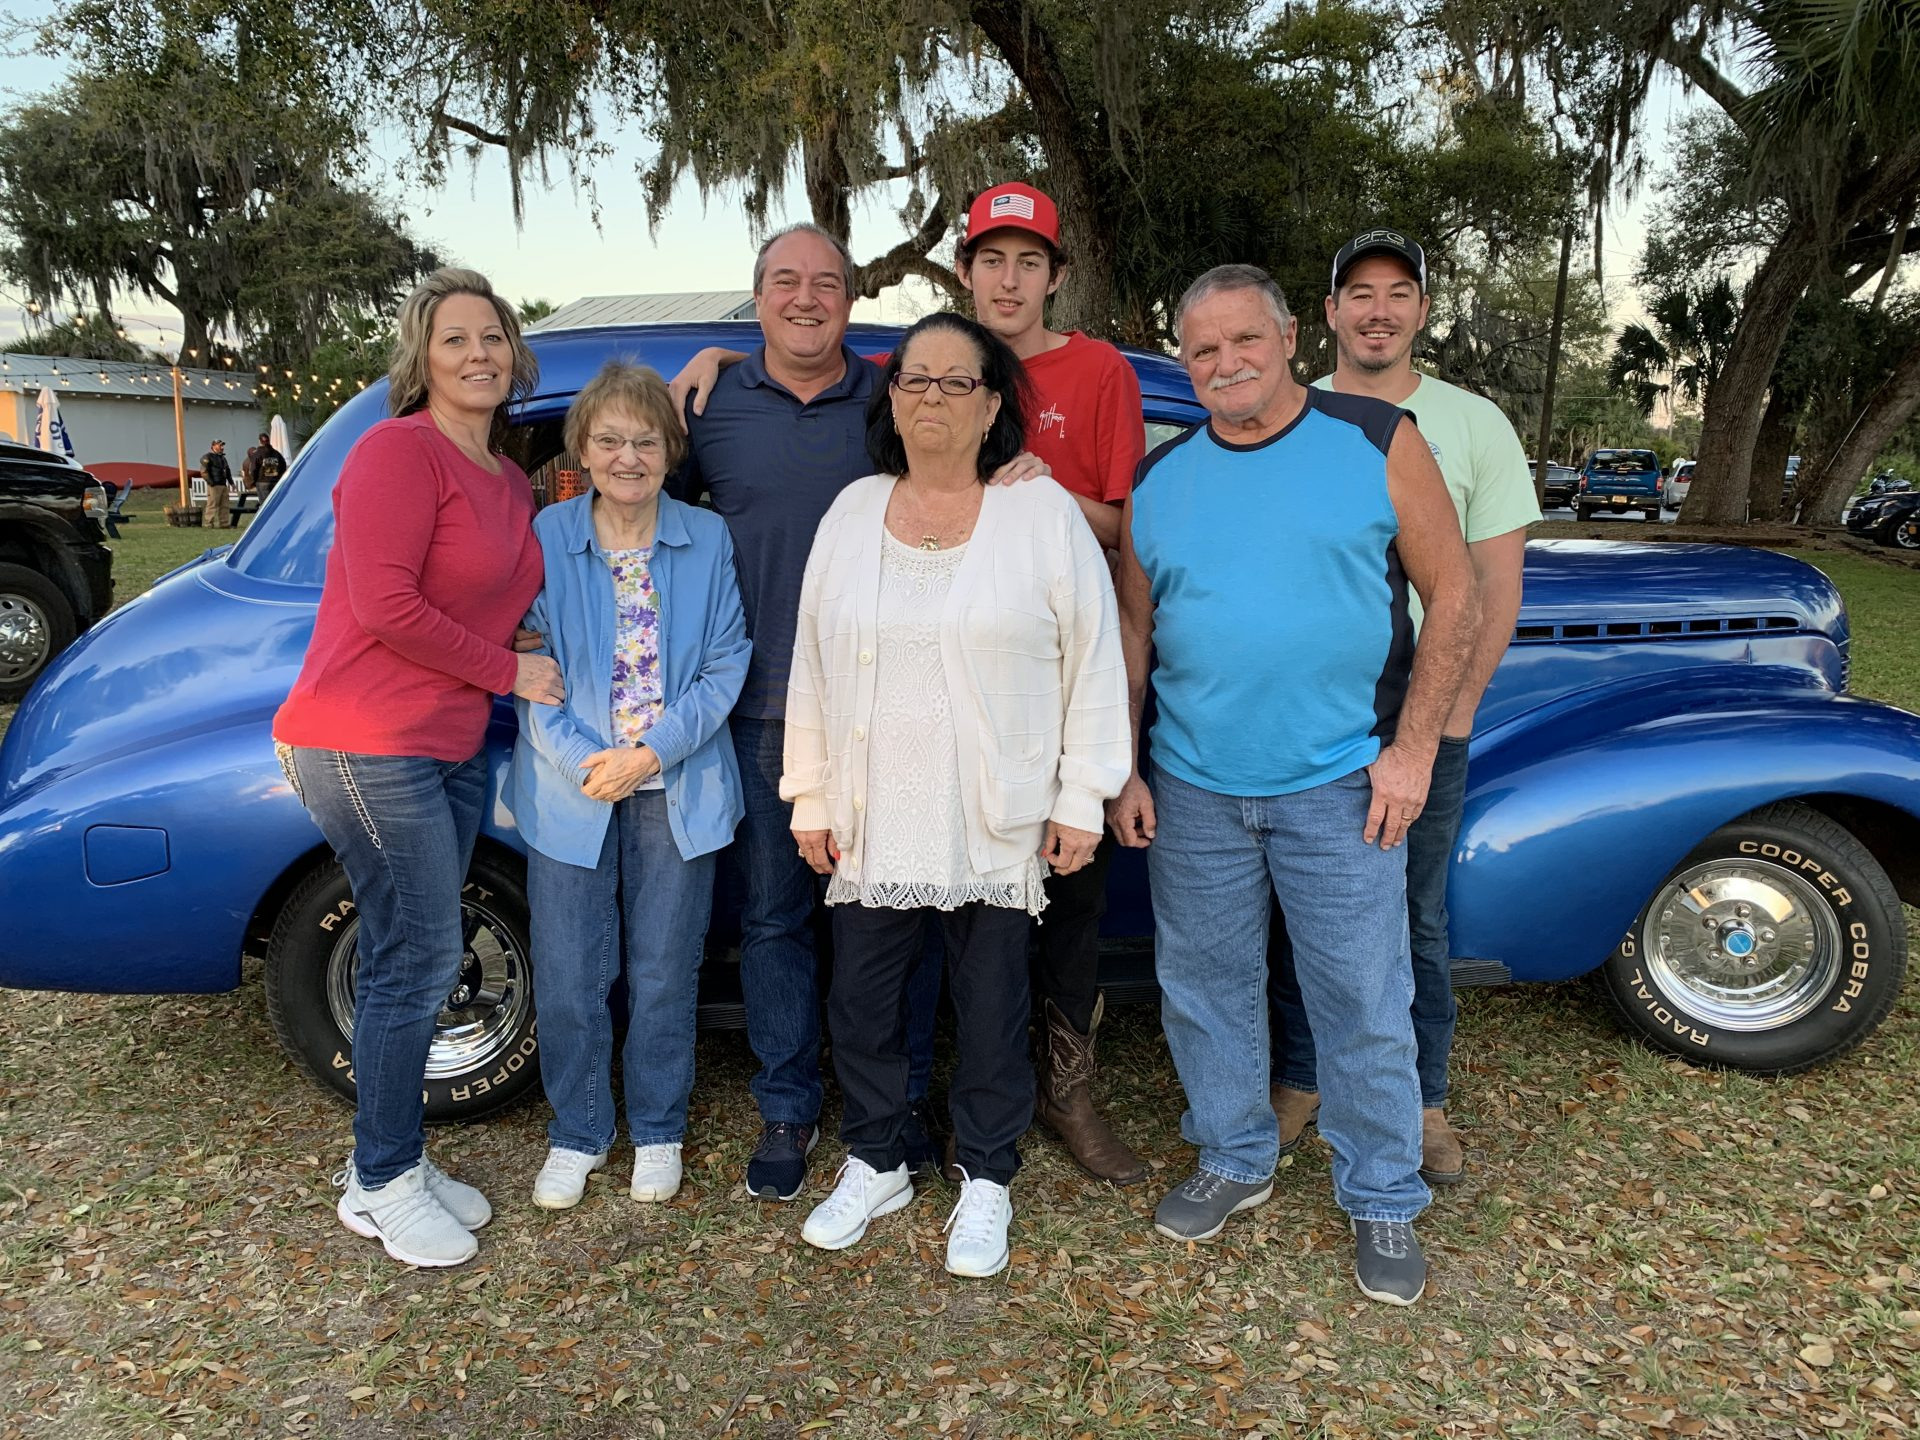 Mom's 83rd Birthday, I took her in my 1940 Chevrolet. She said riding in it brought back a lot of old memories. In photo is my wife Brenda, son's Jacob and Derek, Mom and Brenda's Mom and Dad Ronald and Kathy Wheeler.